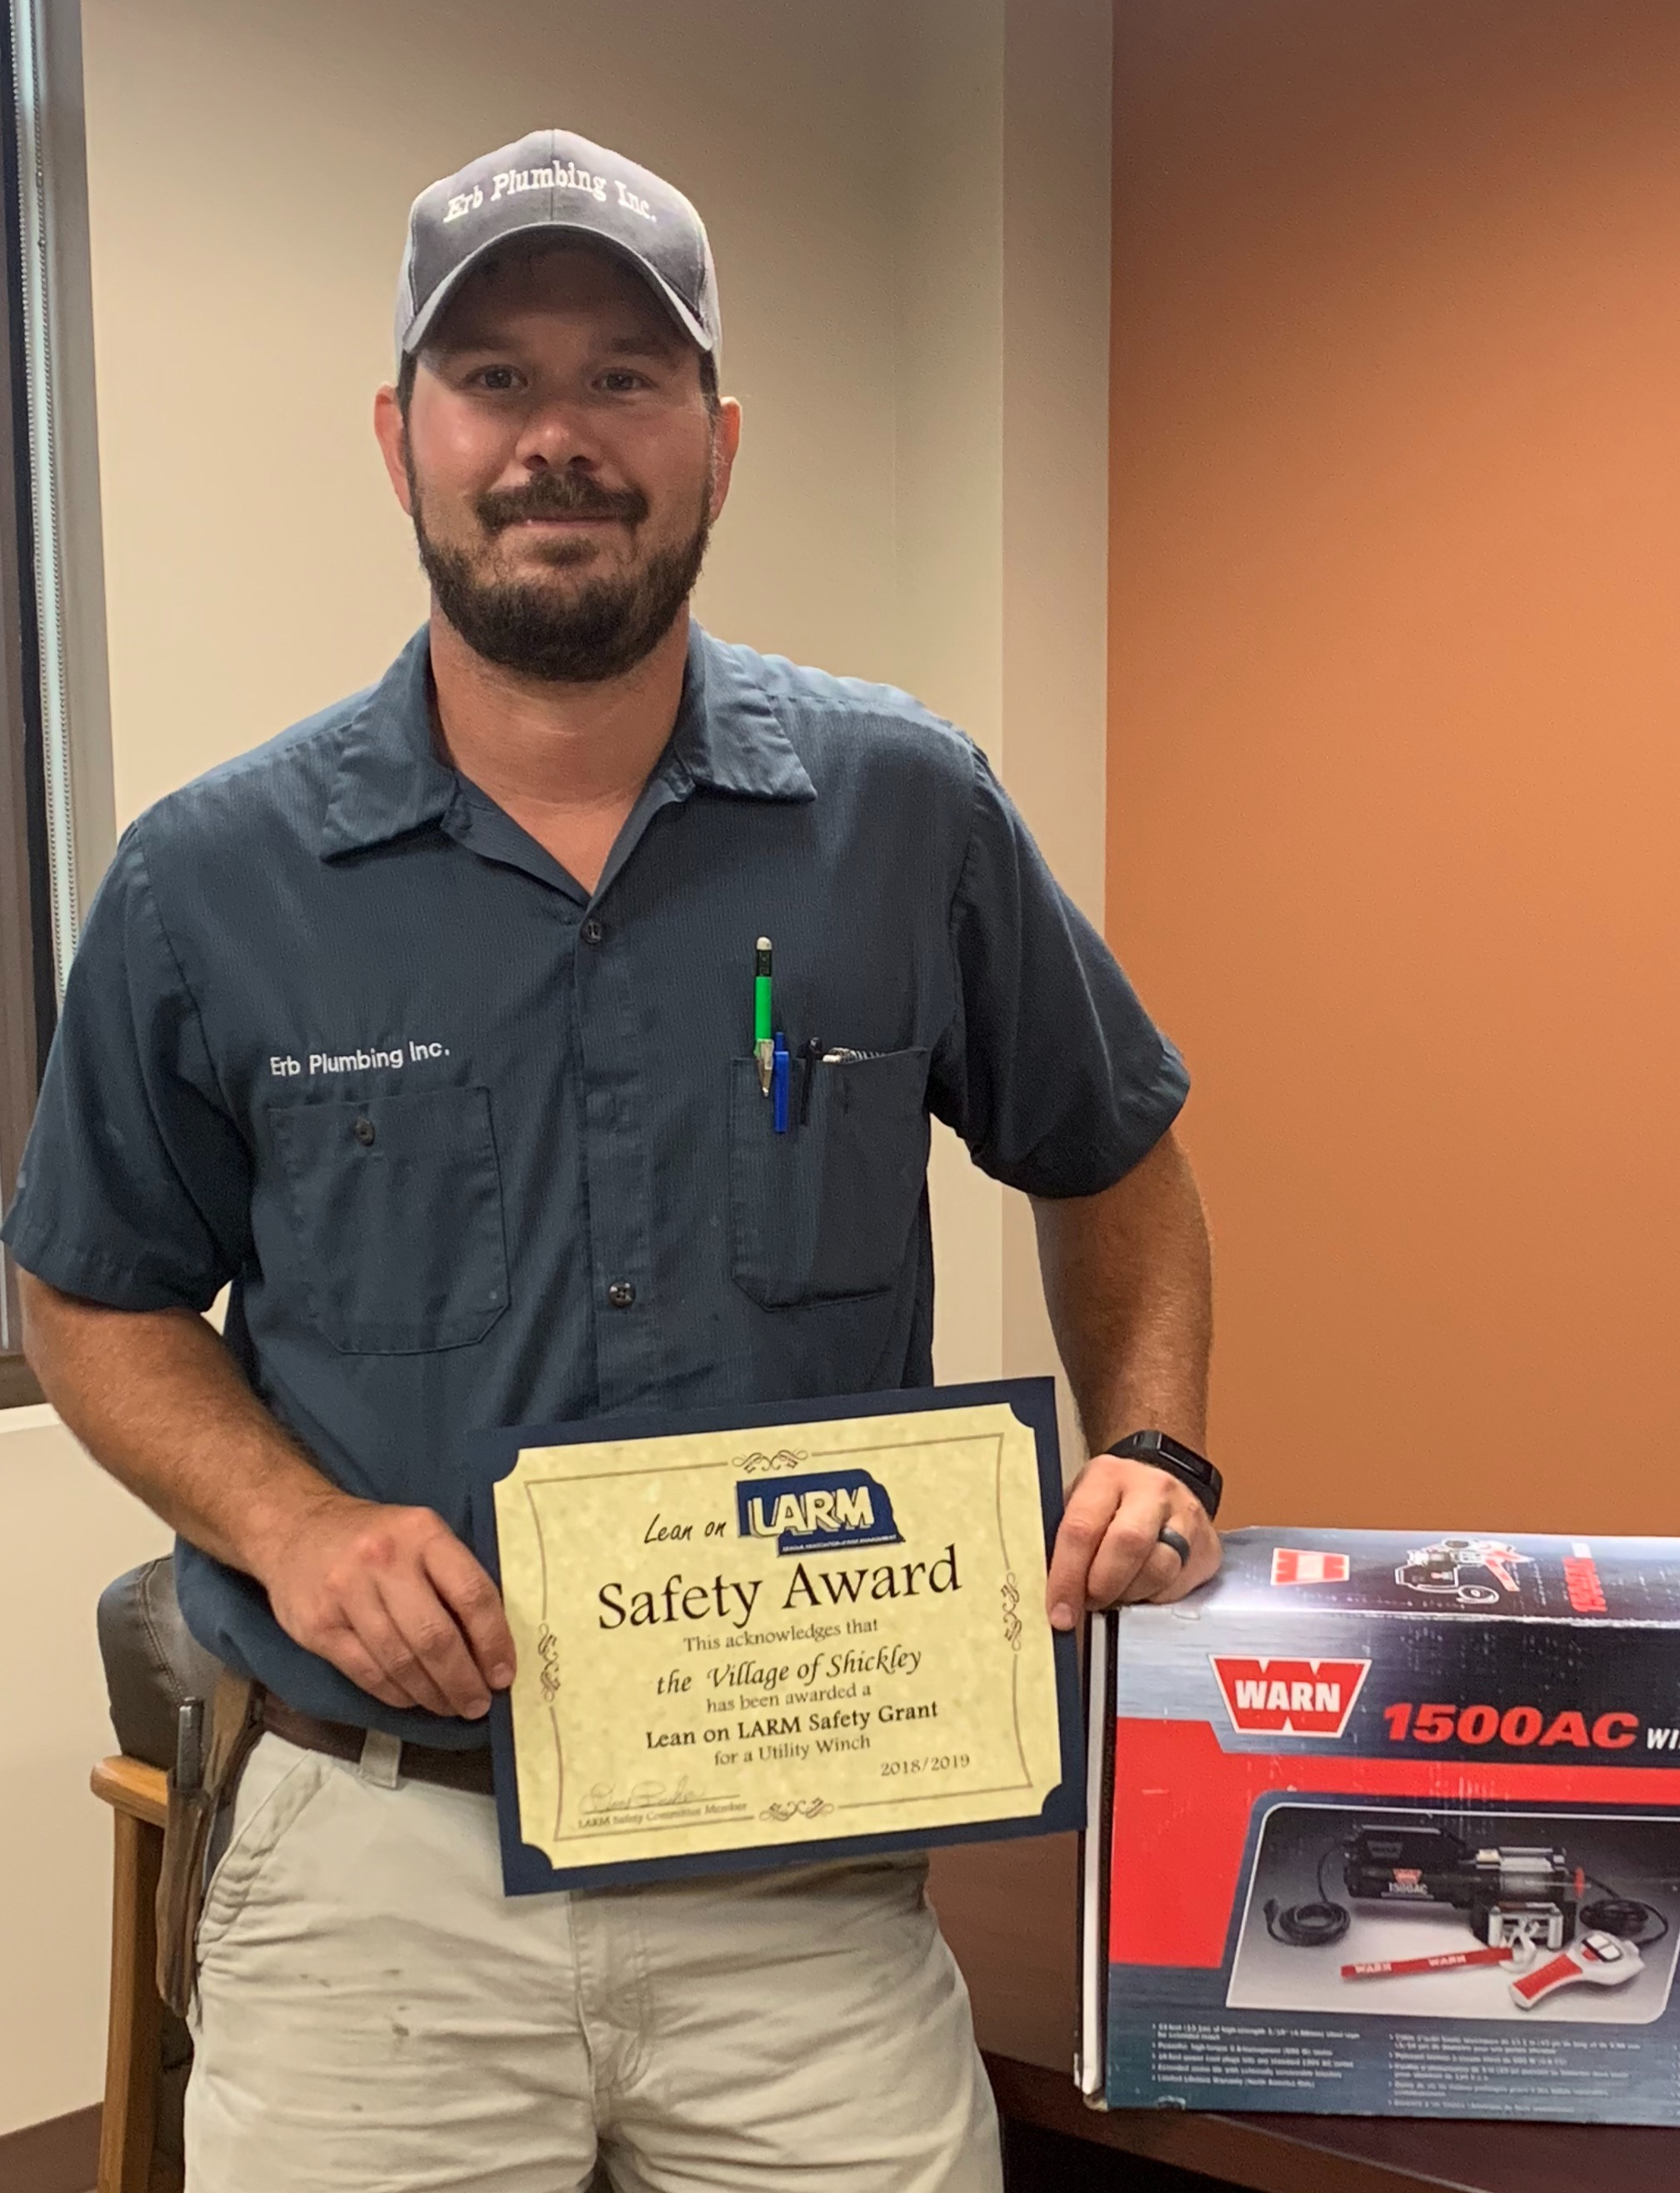 The Village of Shickley purchases safety winch with LARM grant